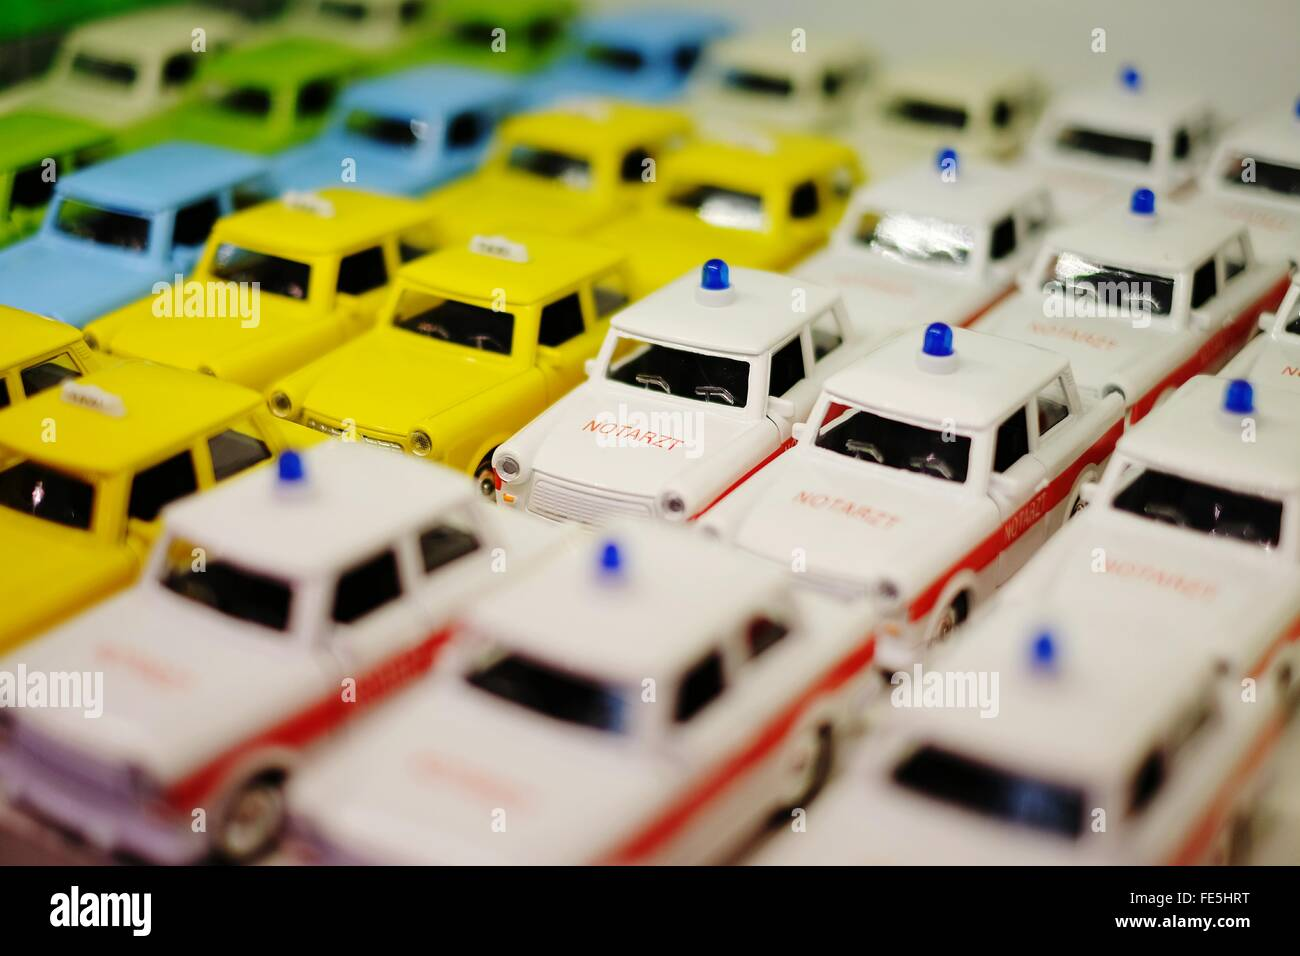 Detail Shot Of Toy Cars - Stock Image